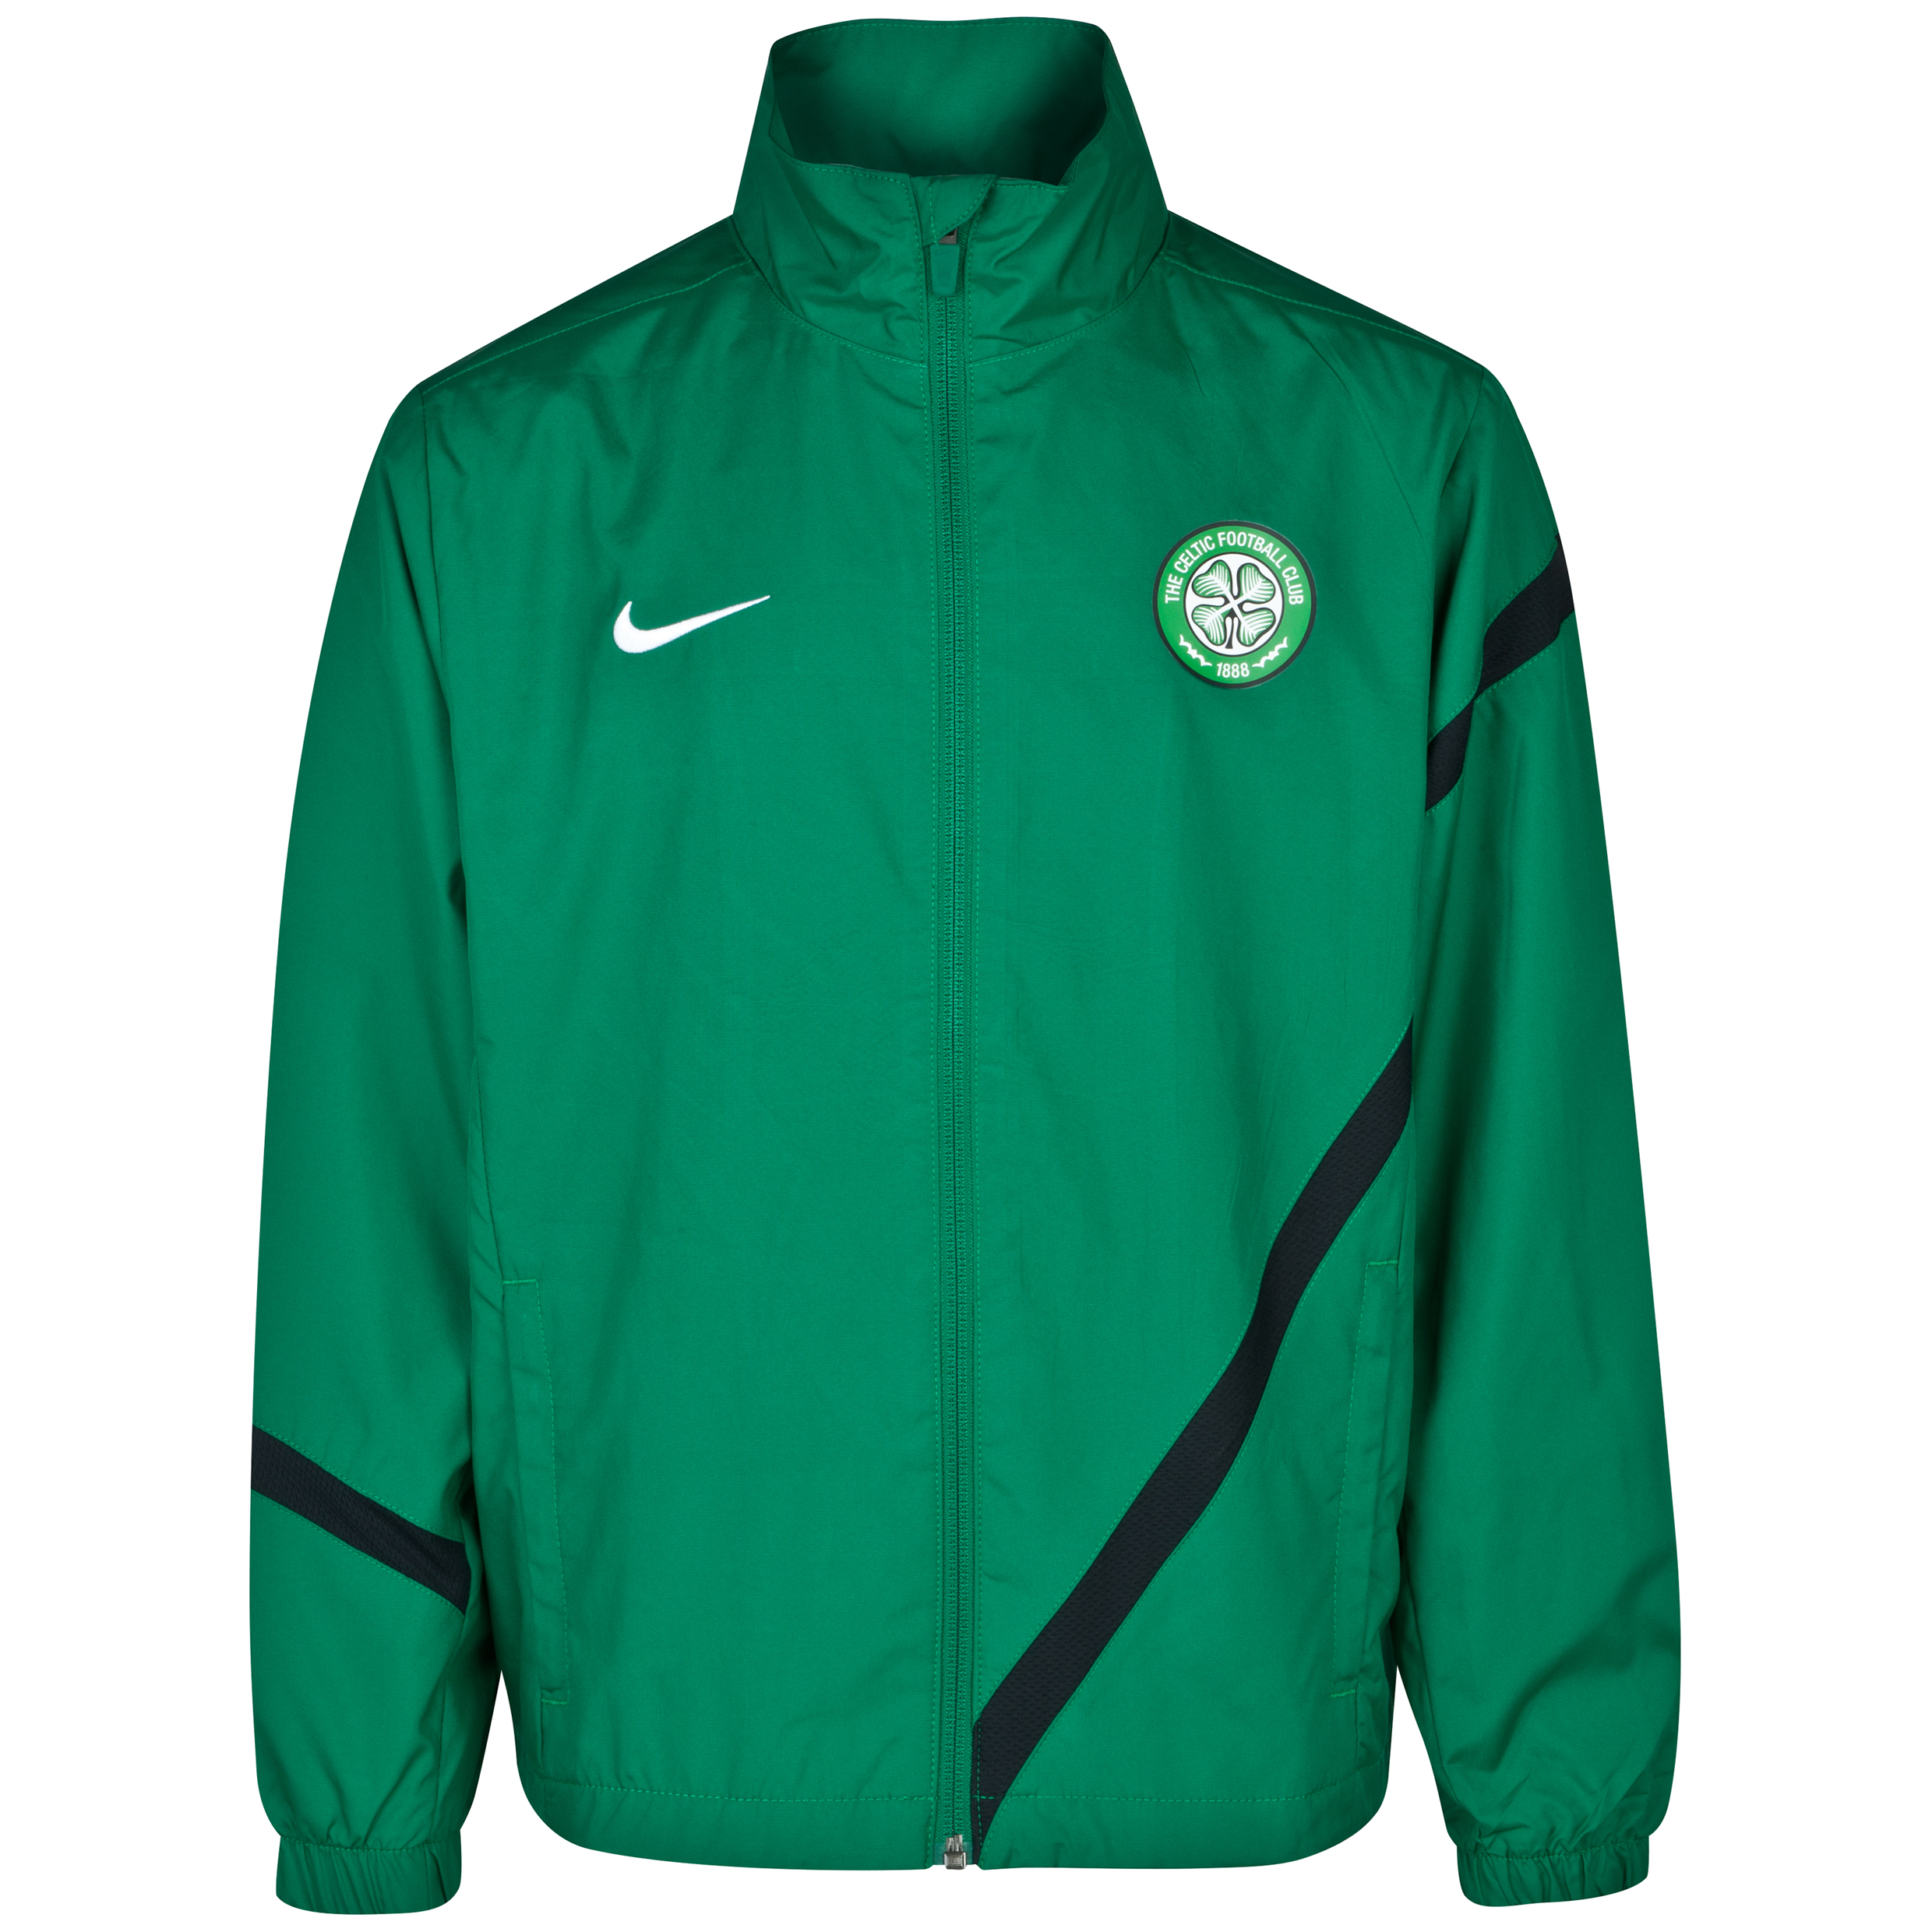 Celtic Comp Sideline Jacket - Pine Green - Youths